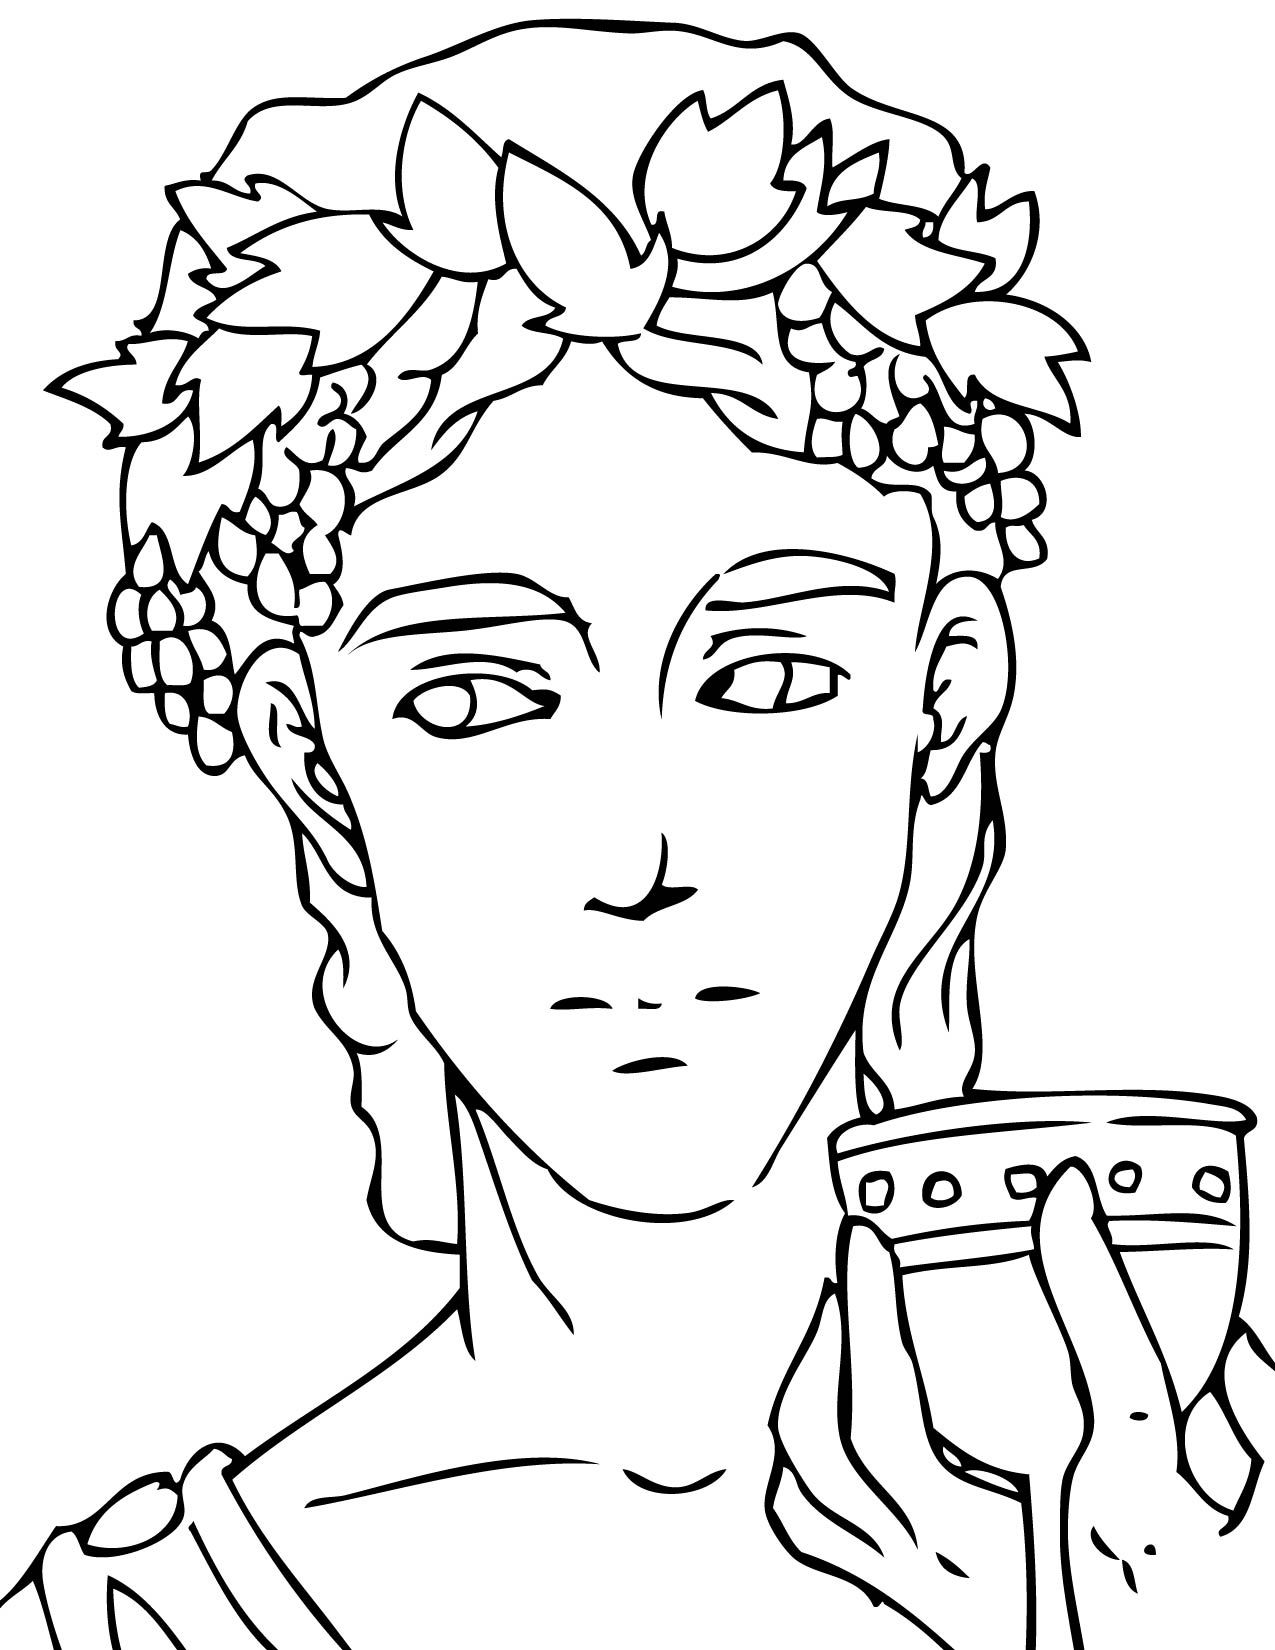 Dionysus Coloring Page Jpg 1275 1650 Greek Gods And Goddesses